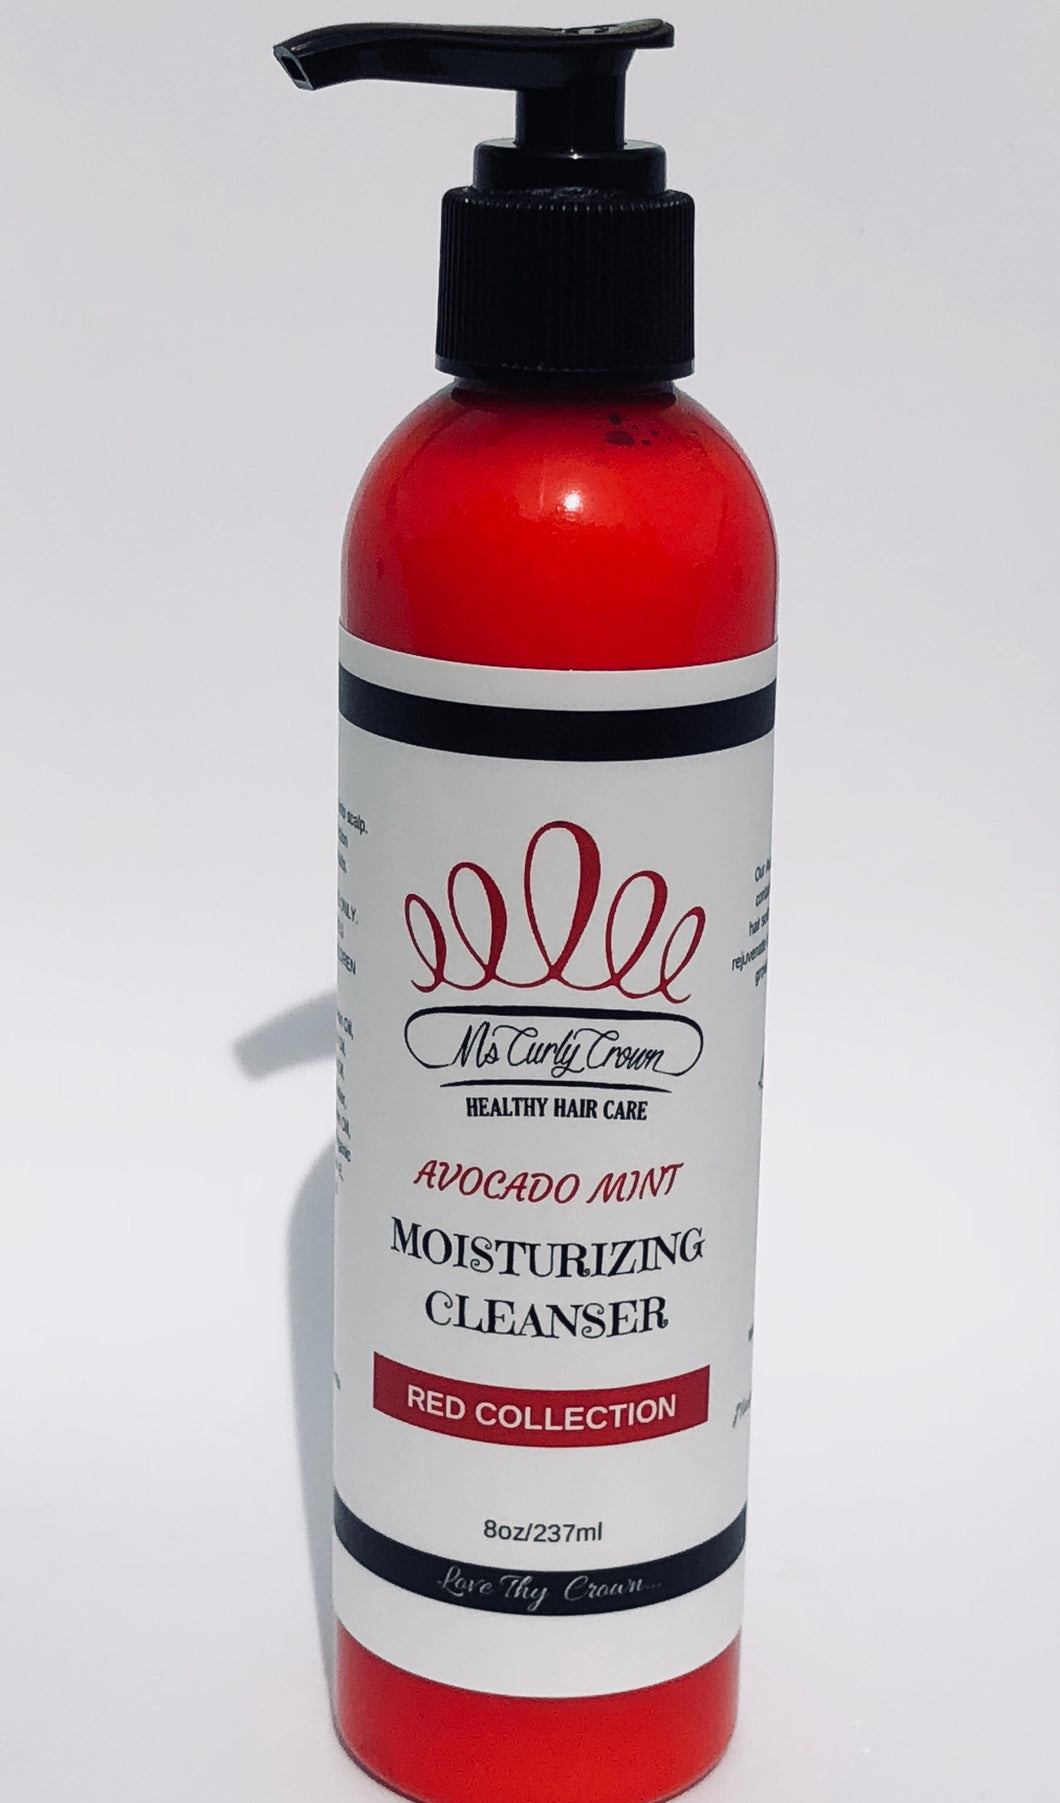 Avocado Mint Moisturizing Cleanser